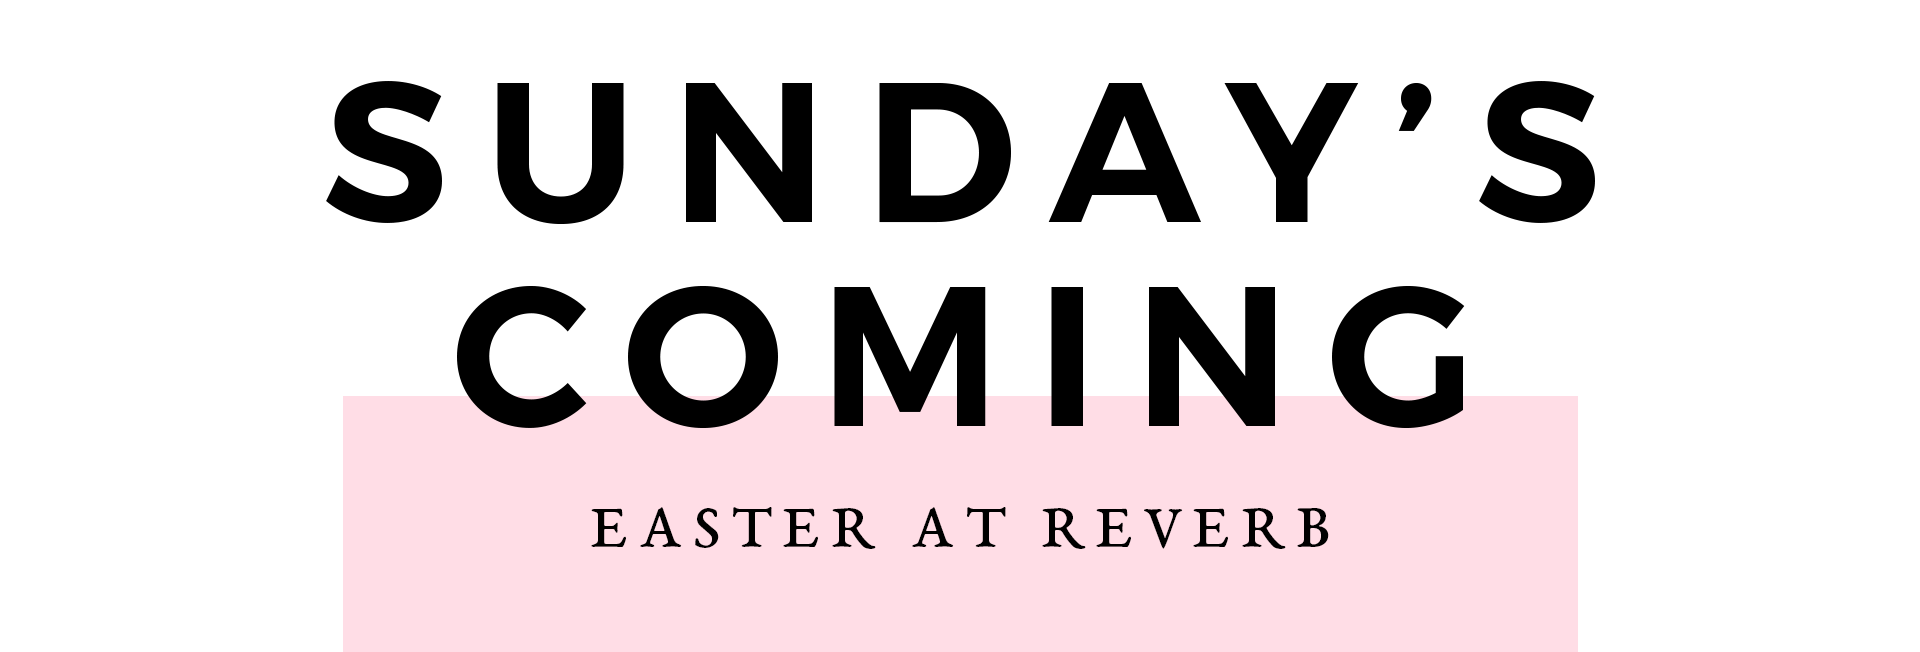 EasteratReverb-pinkbox